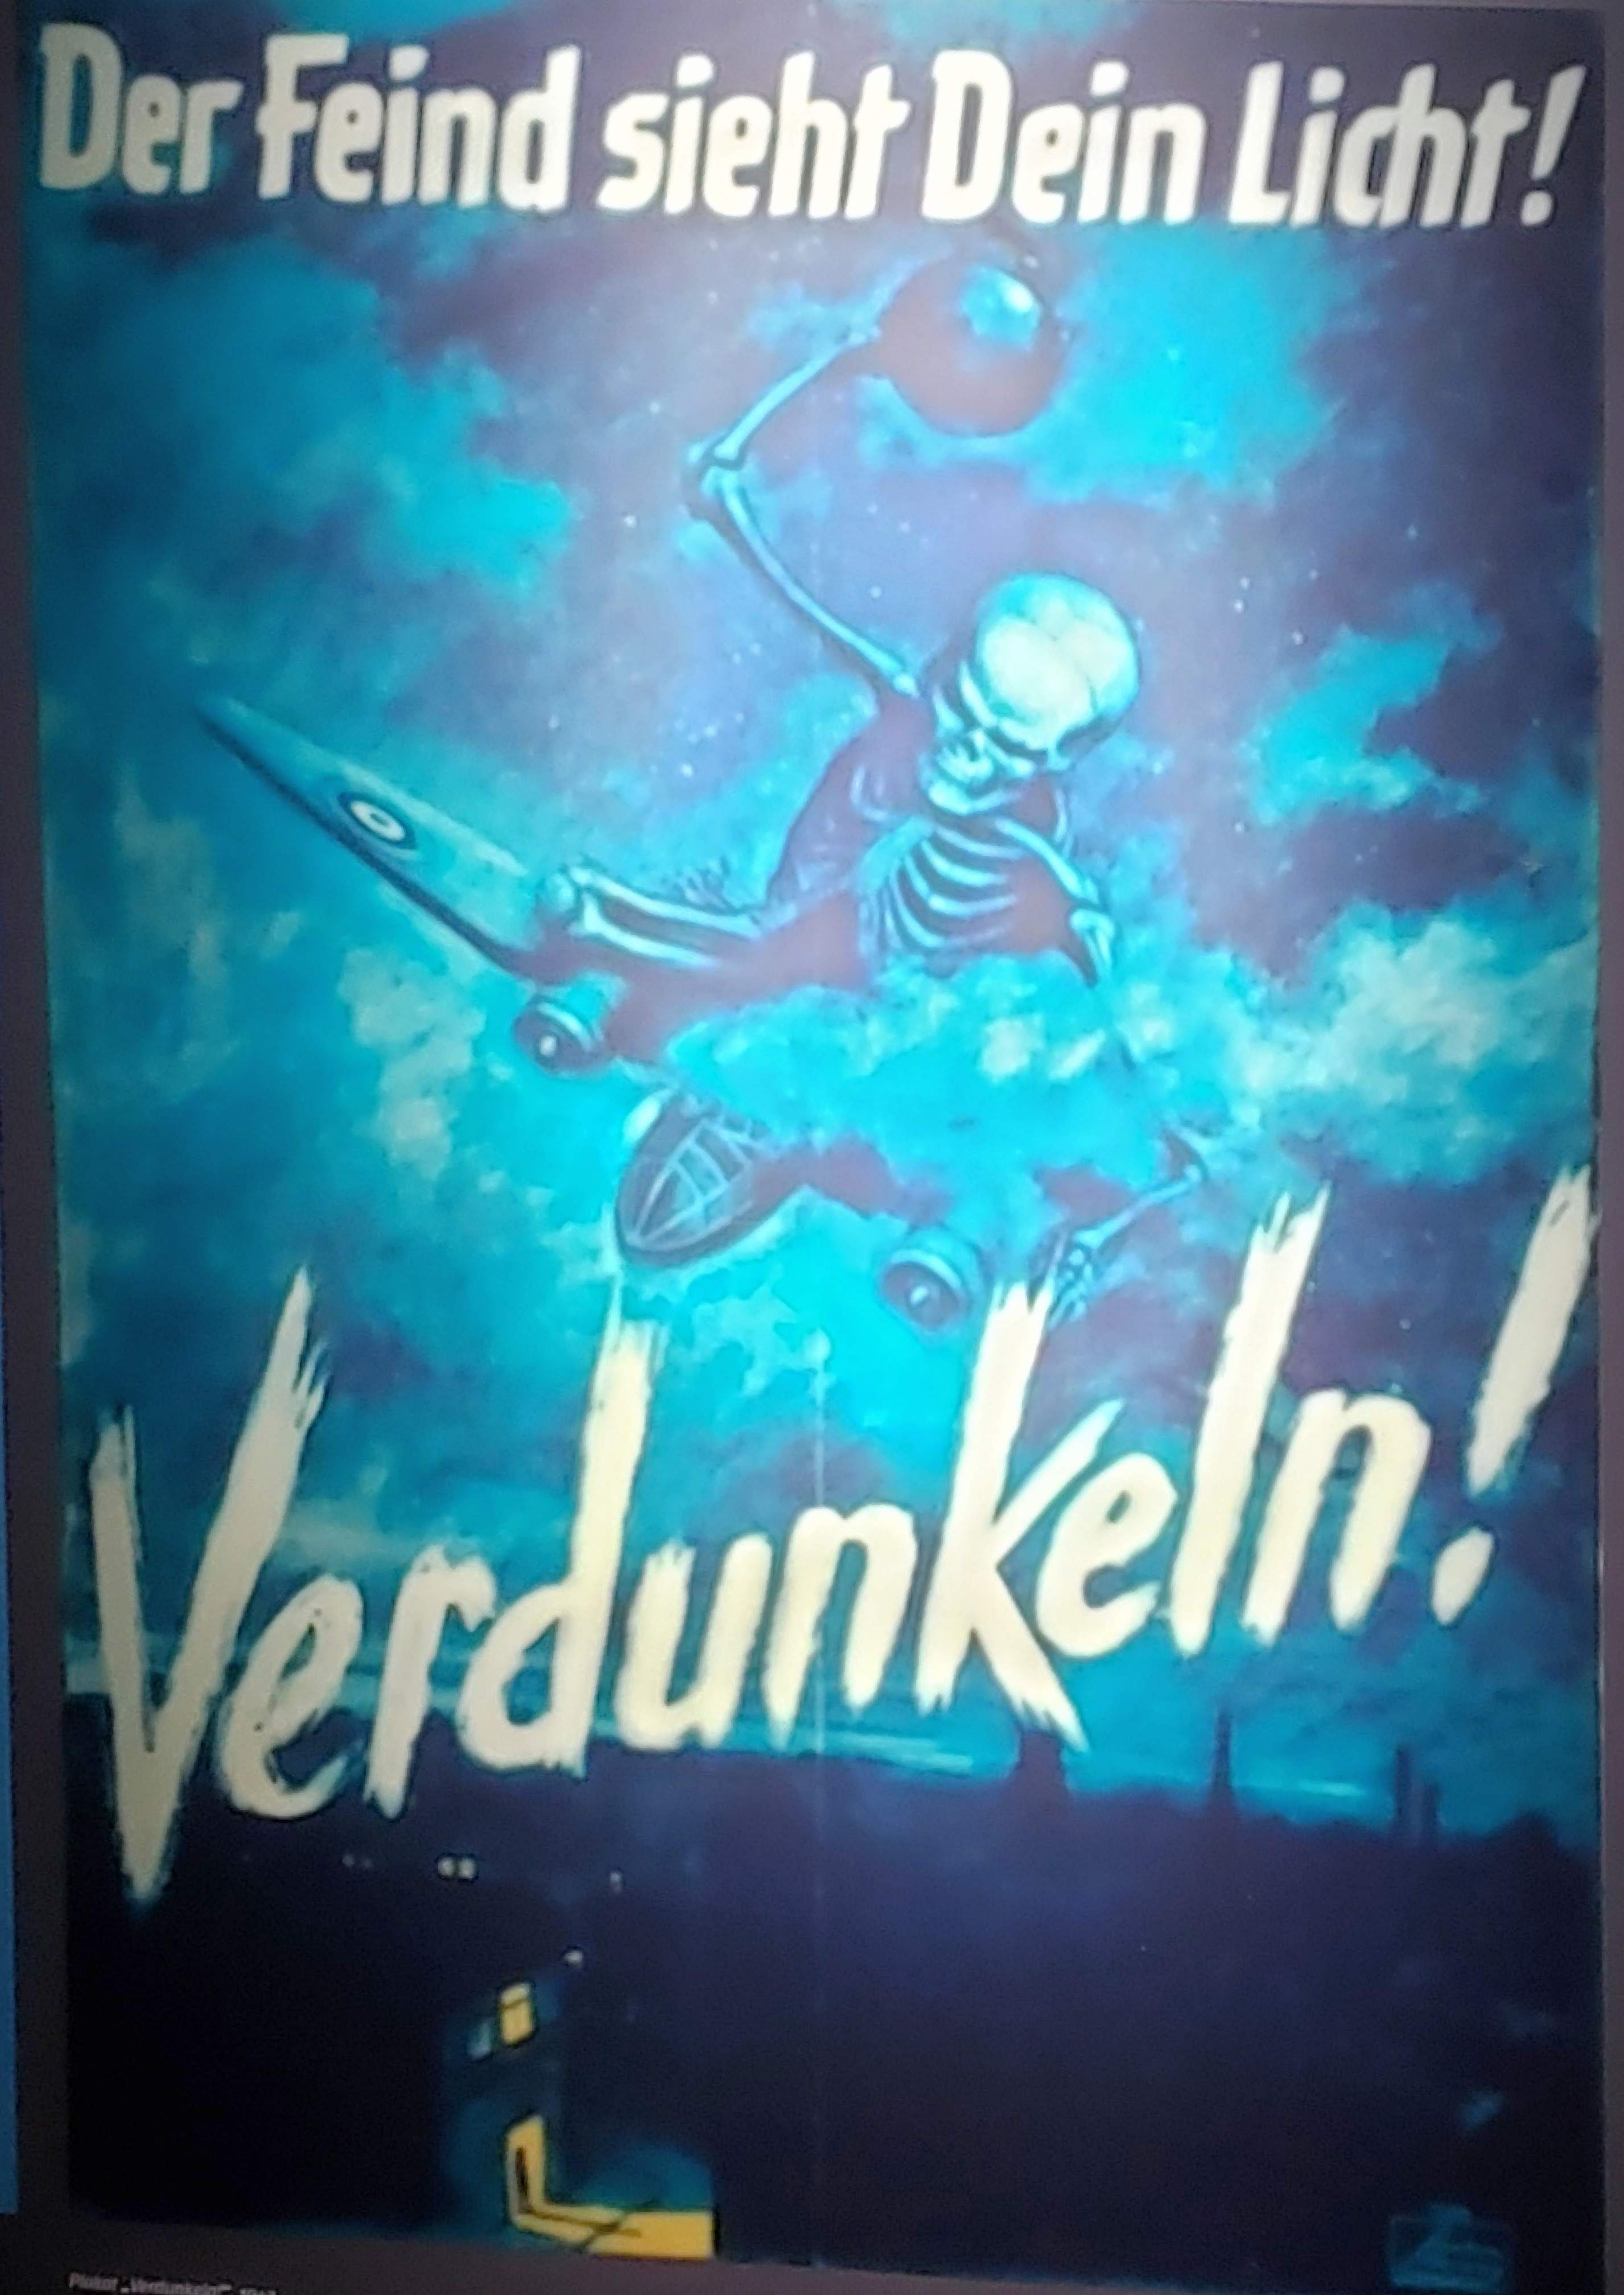 A wartime poster in the Nuremberg Art Bunker